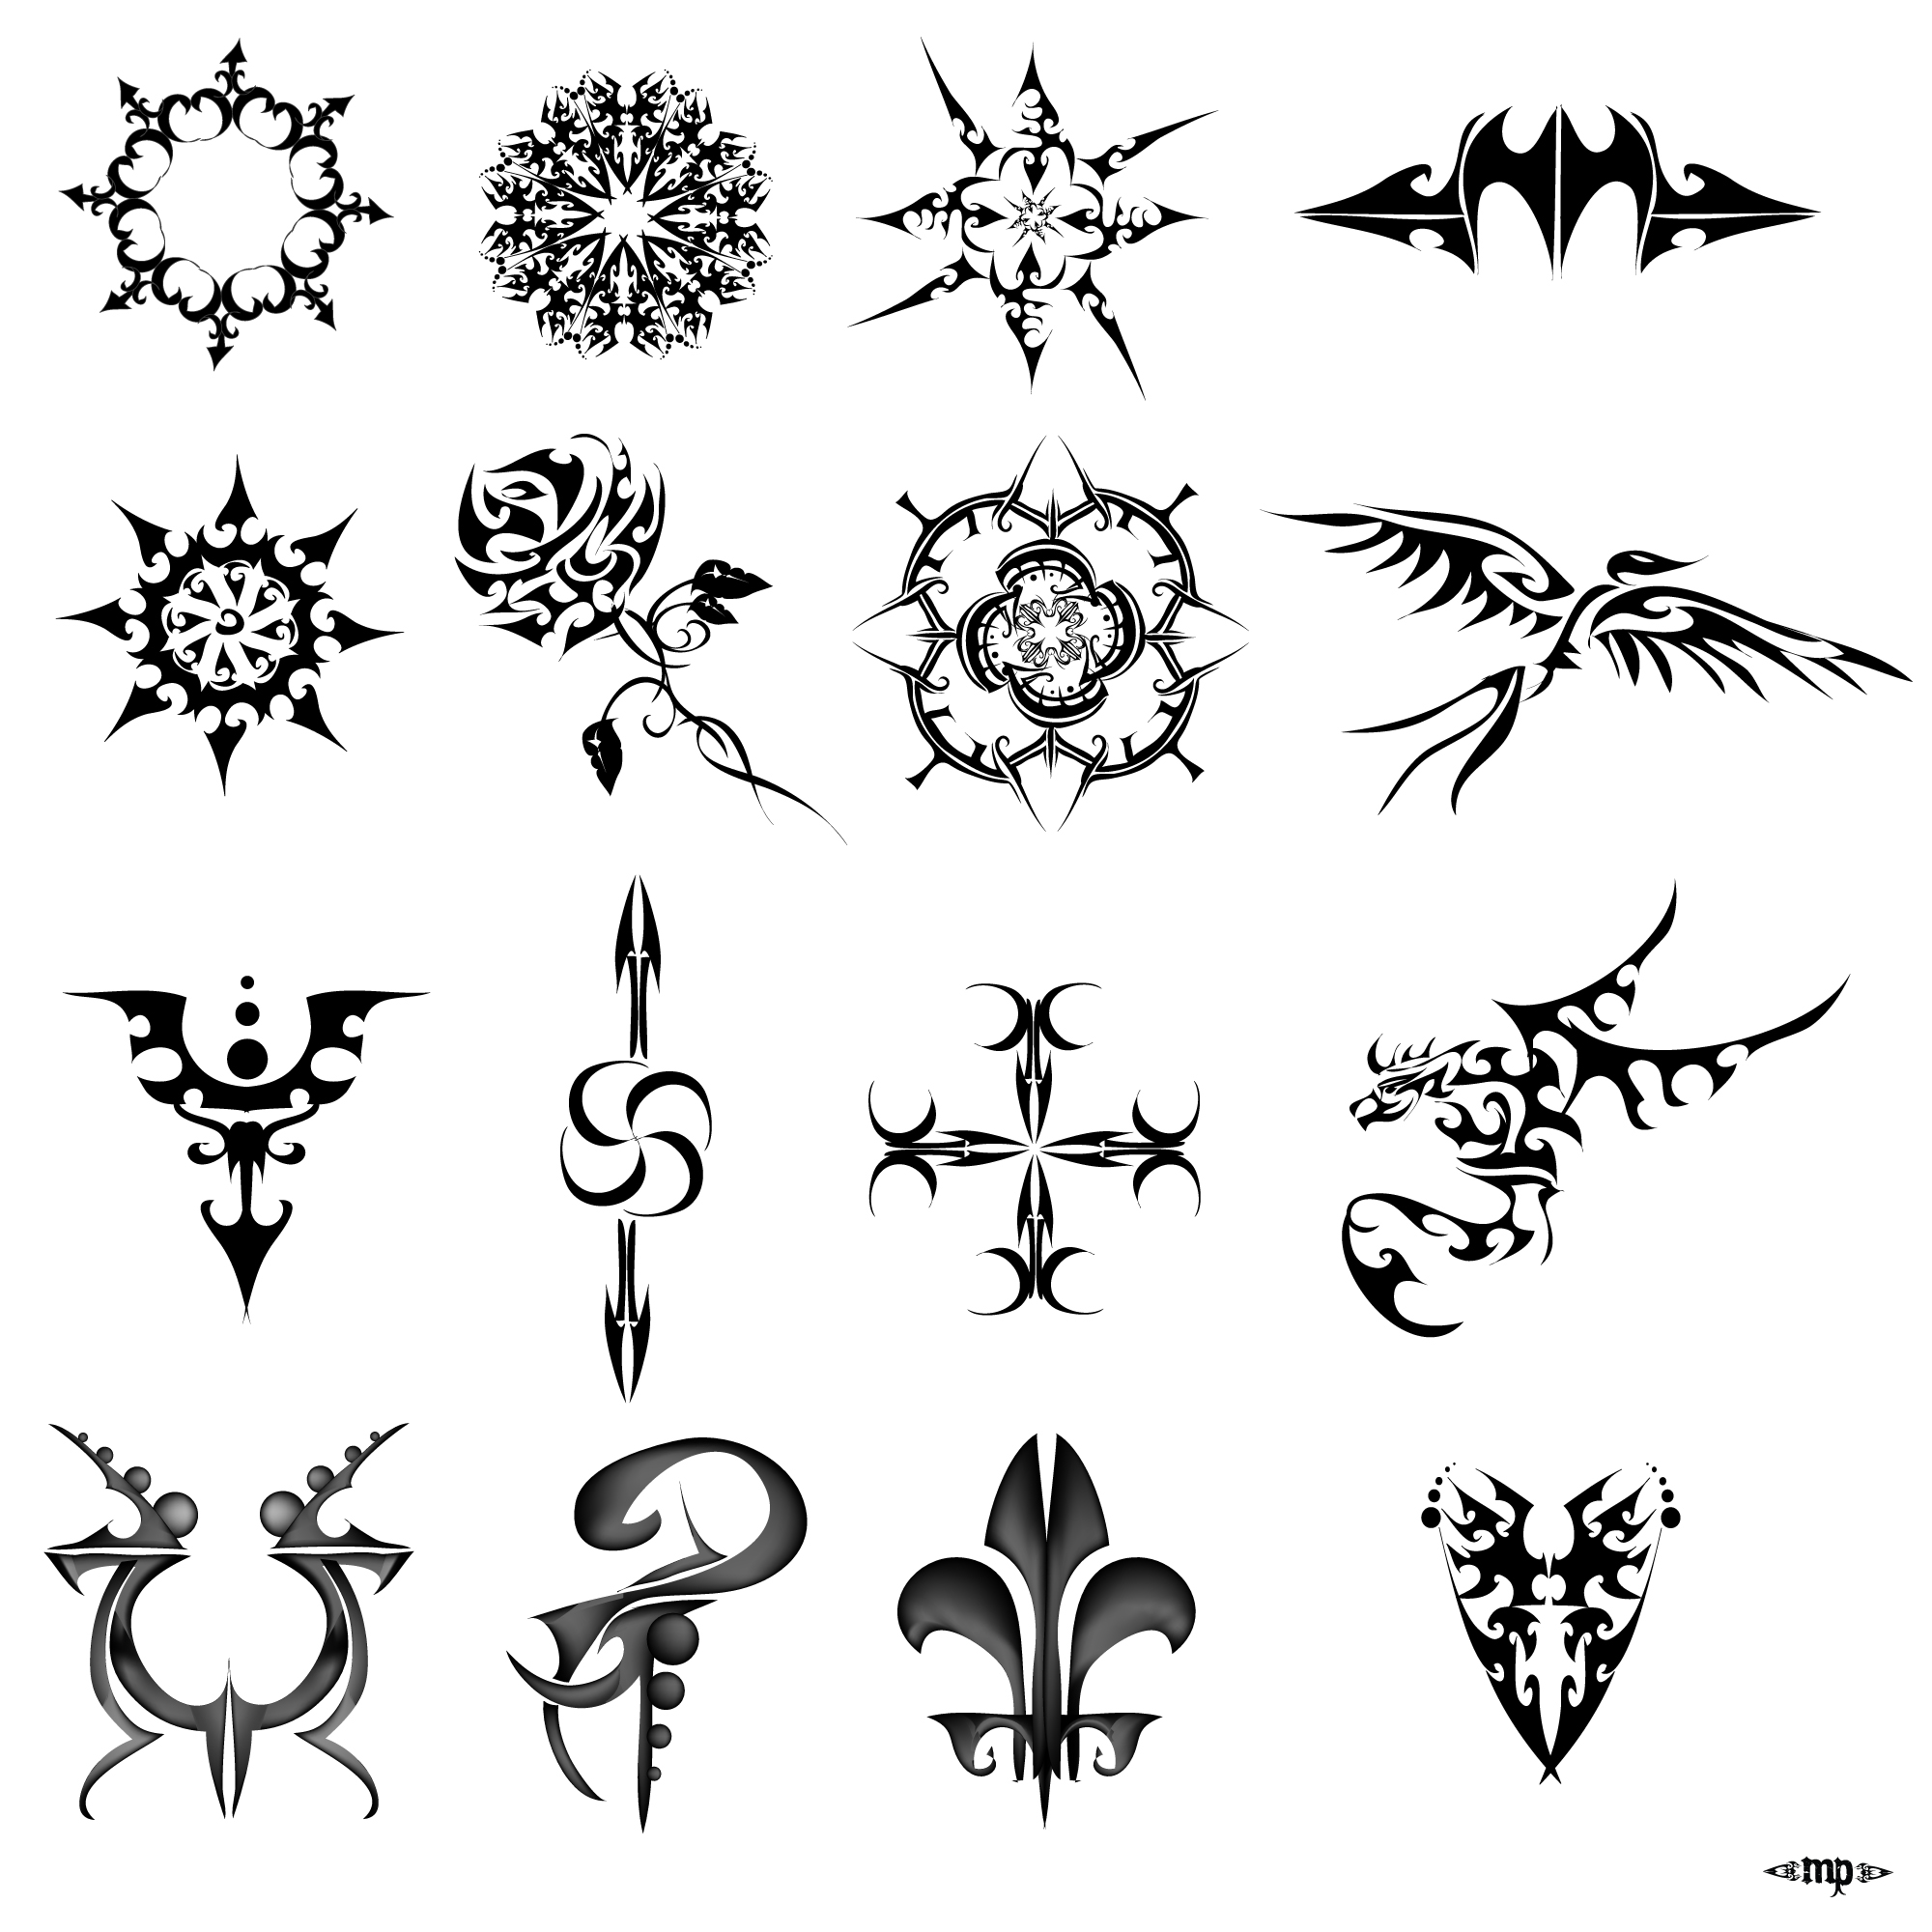 Some Tattoo Design By MPtribe On DeviantArt